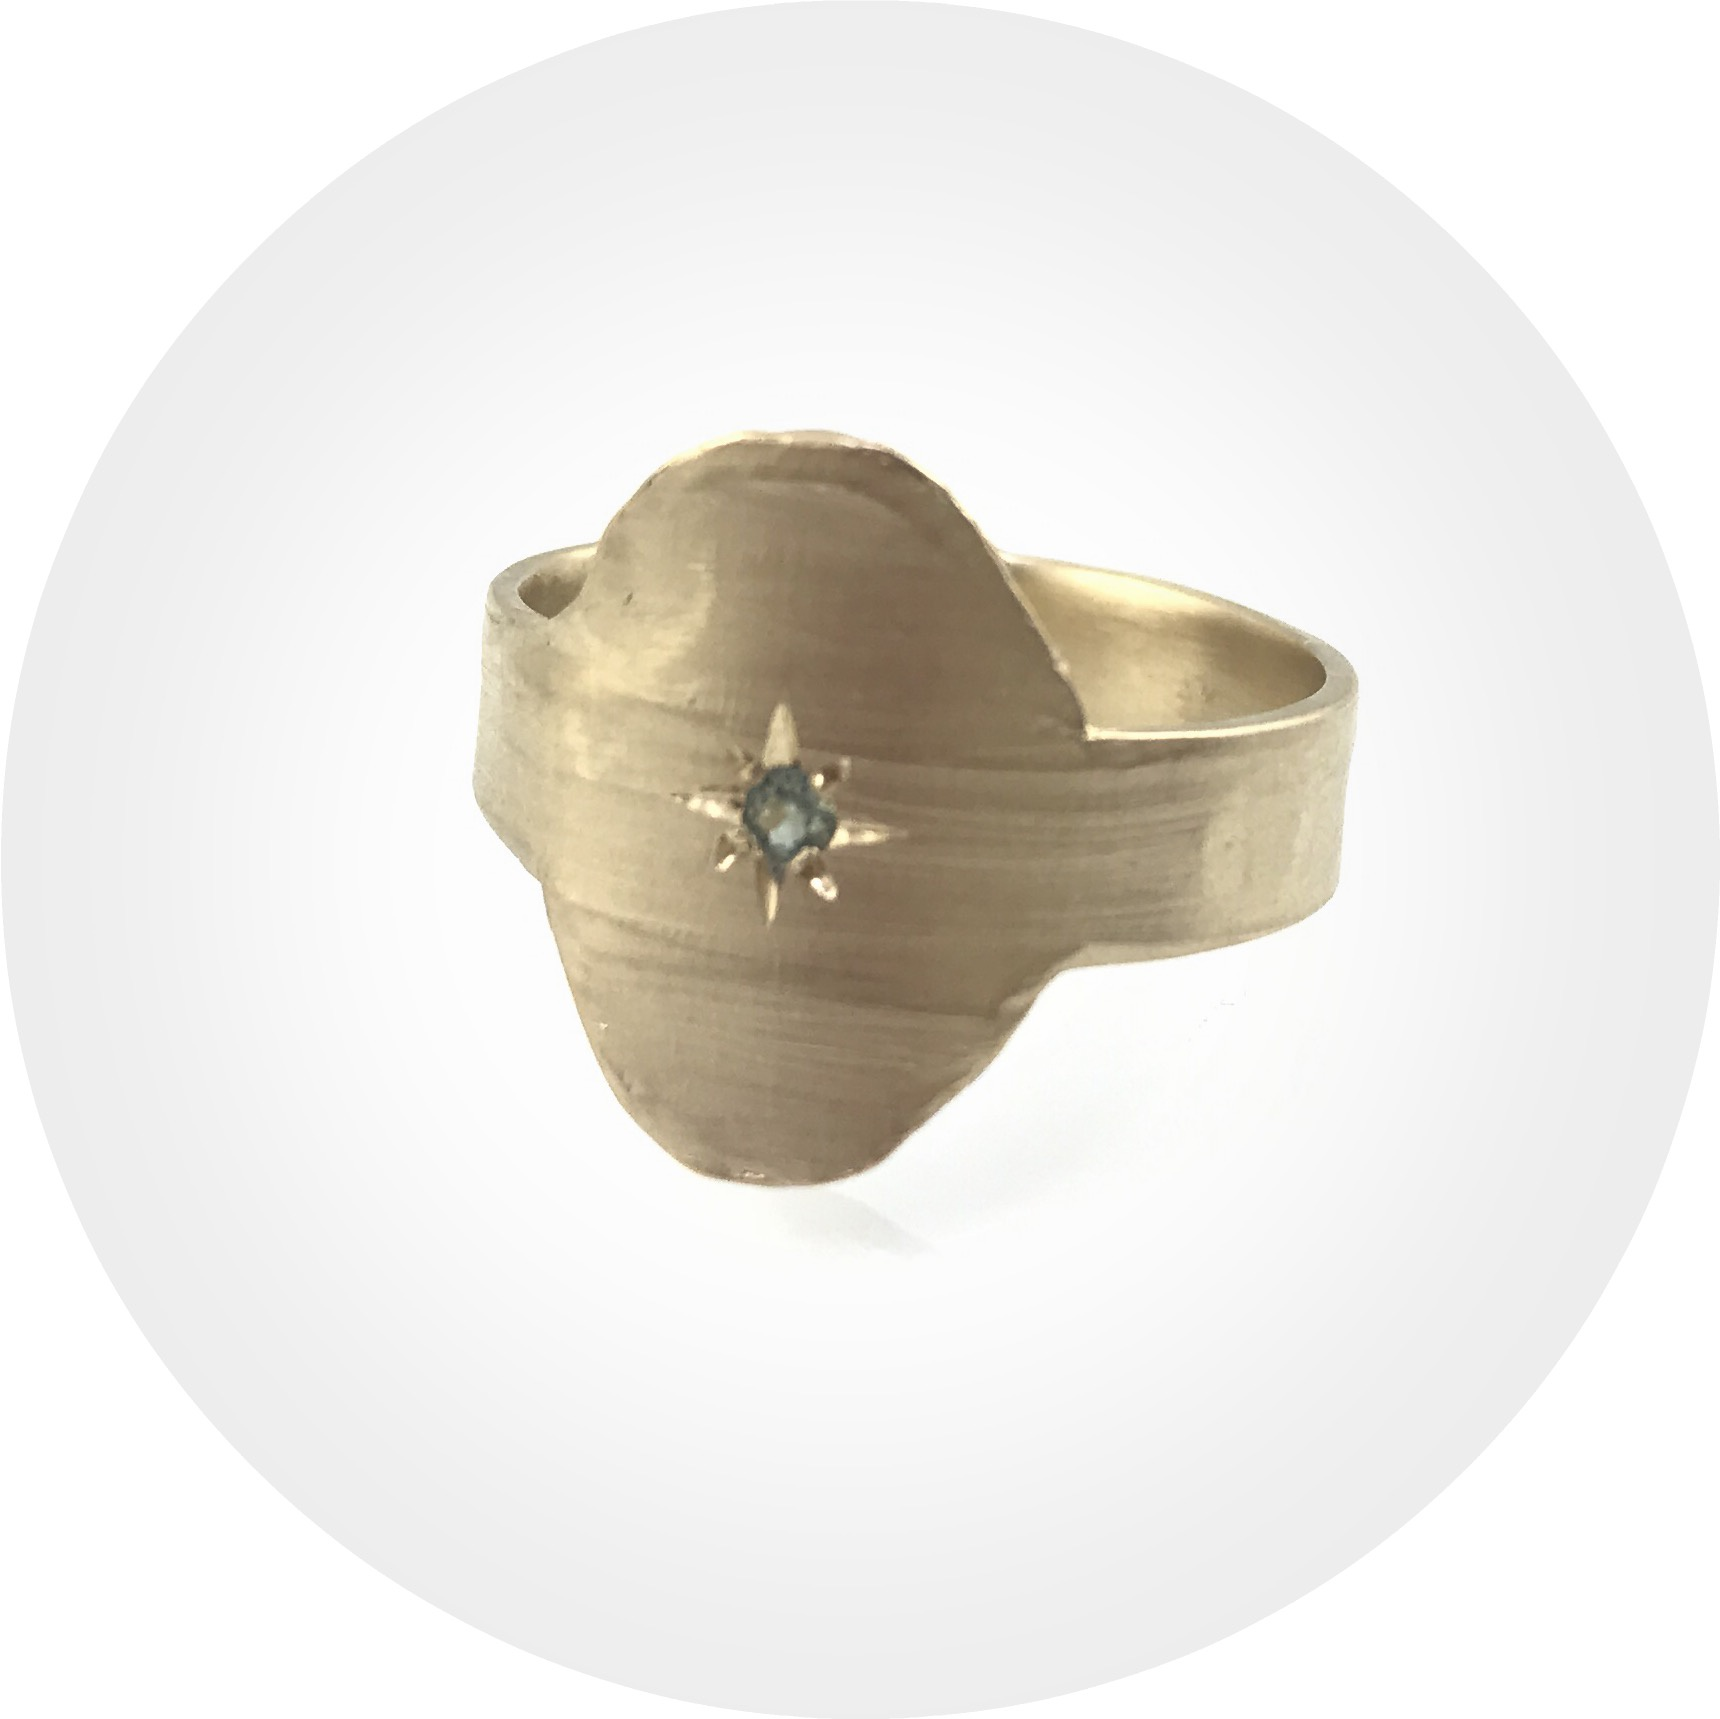 Nina Baker - Mystic Caper Series - Oval Signet Ring in 9ct Yellow Gold with Australian Blue Sapphire